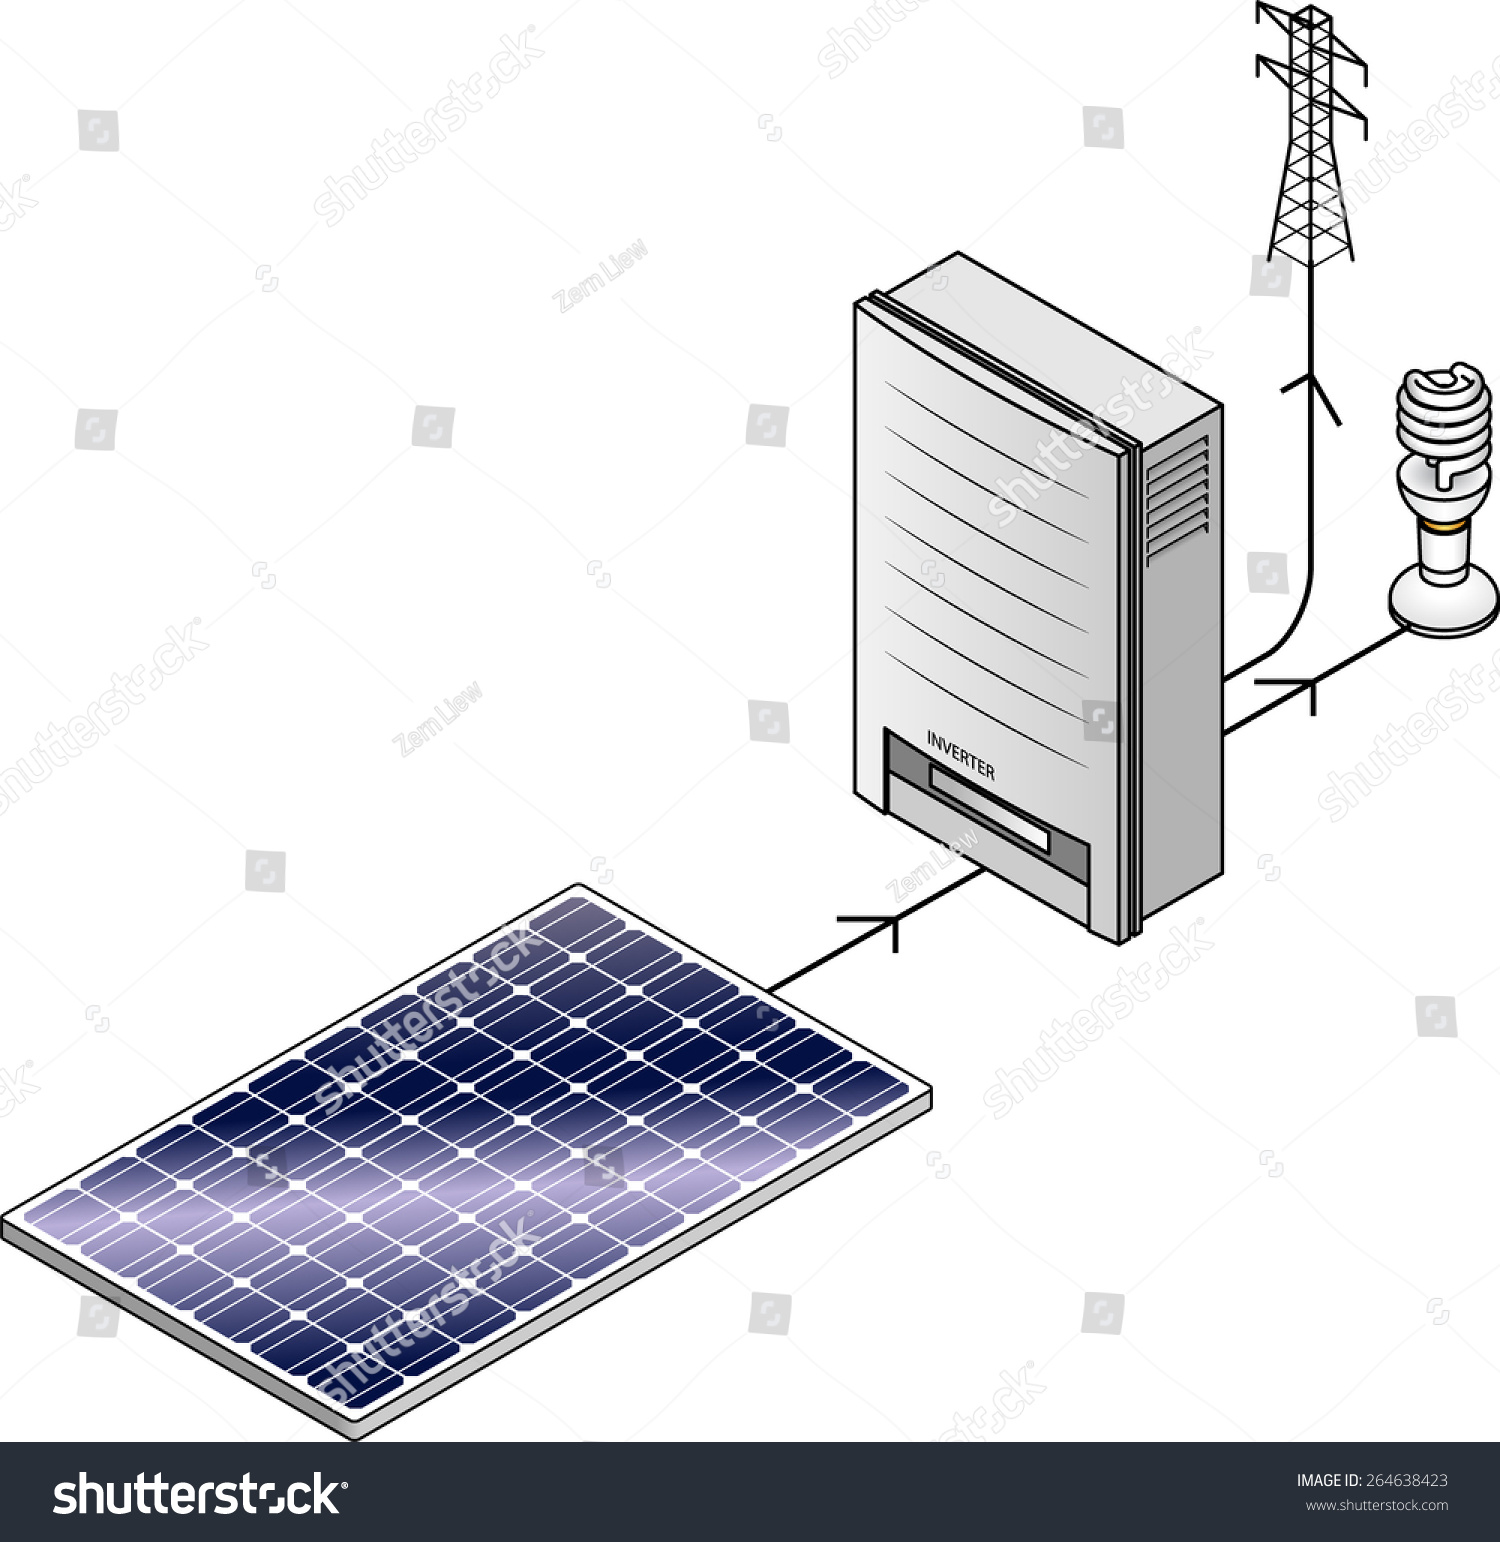 Domestic Inverter Types With Applications